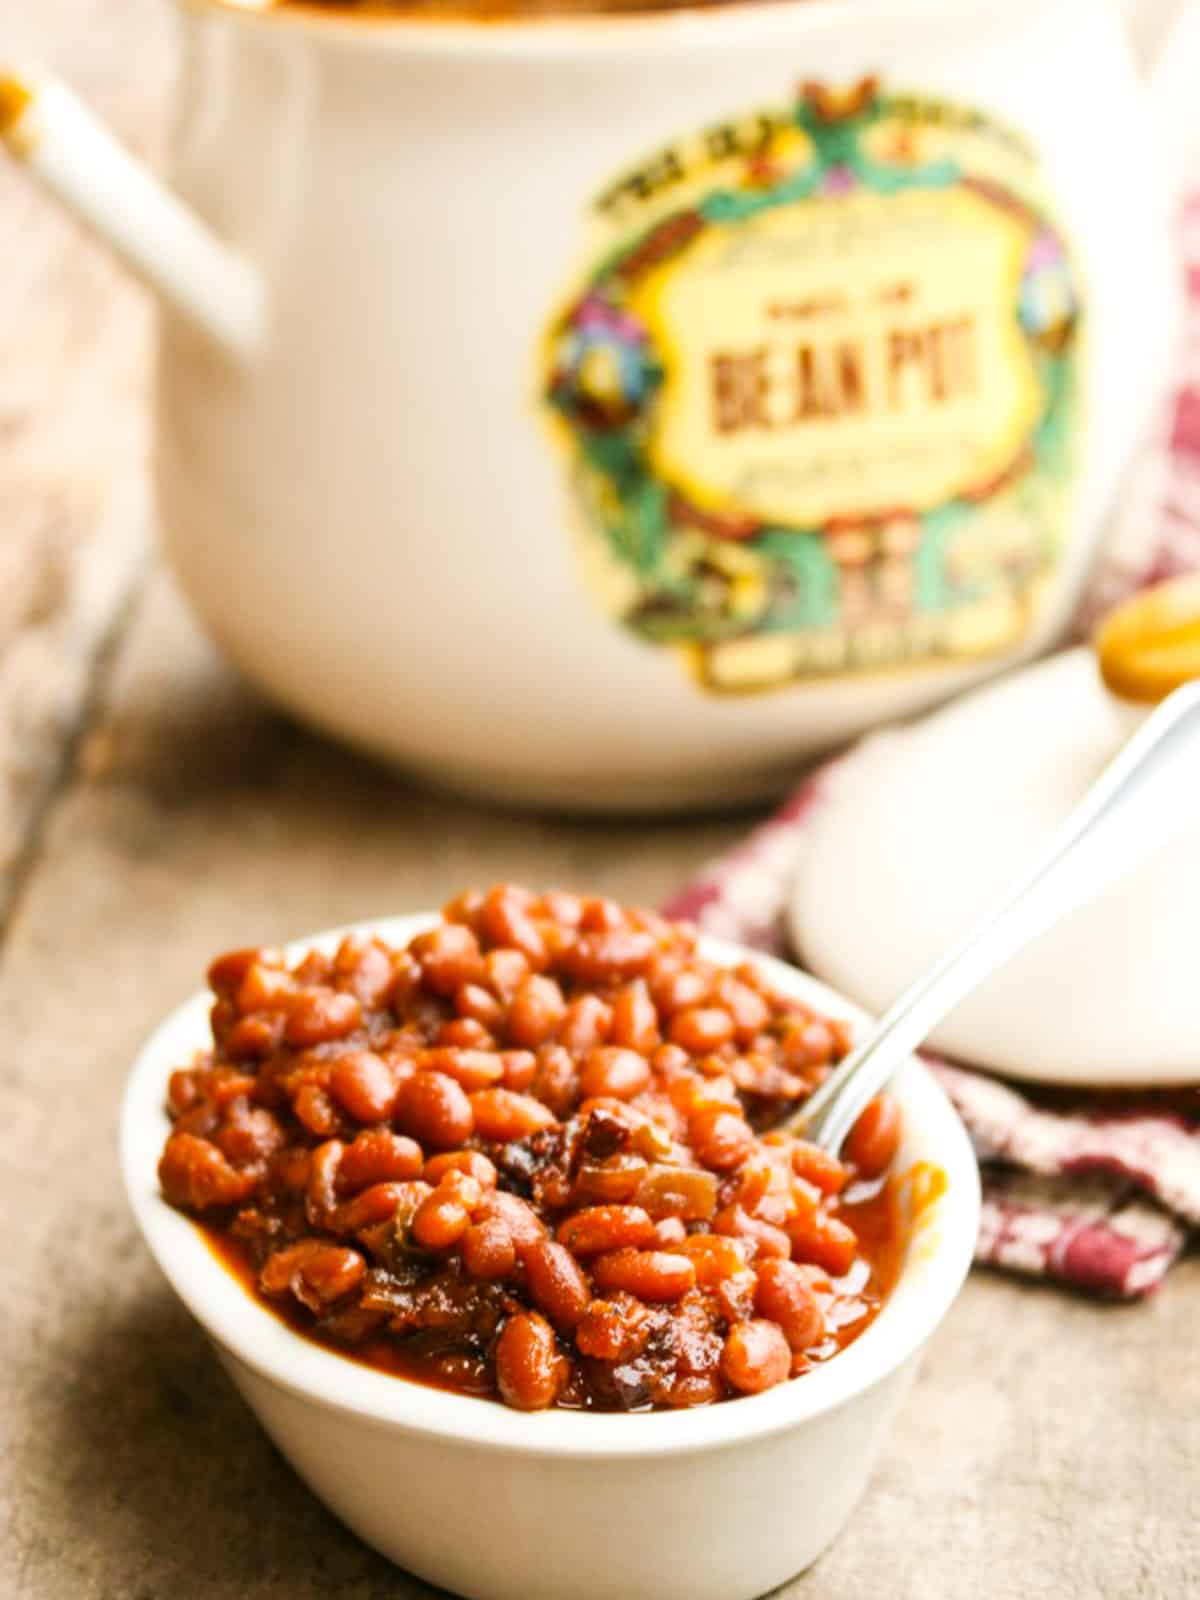 A small white bowl filled with baked beans with a bean pot in the background.